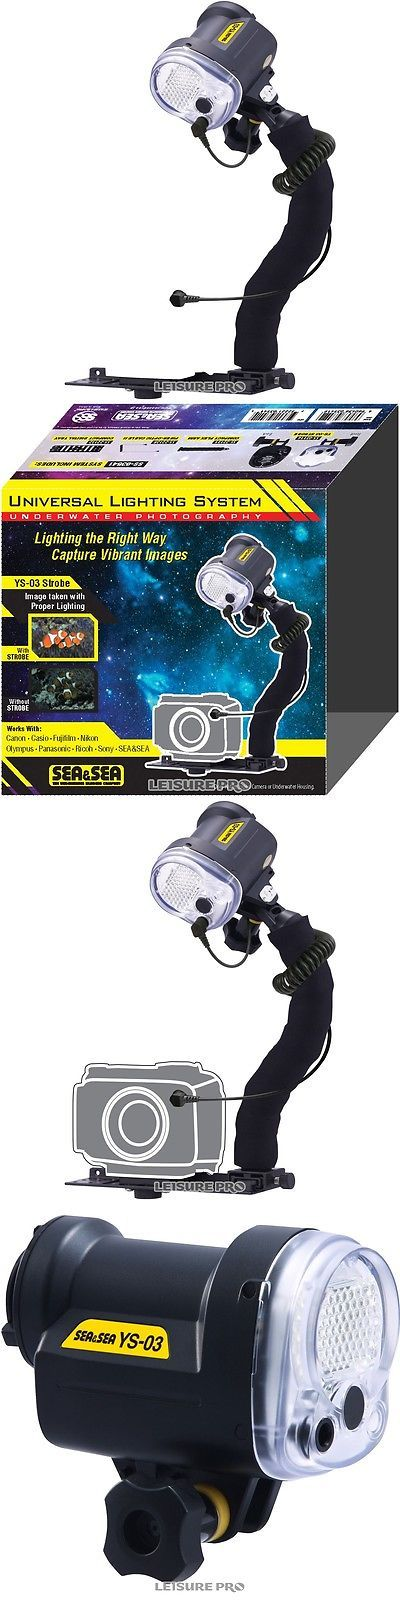 "Underwater Photography 91567: Sea Sea Ys-03 Universal Lighting System -> BUY IT …""></p> <p>Underwater Photography 91567: Sea Sea Ys-03 Universal Lighting System -> BUY IT NOW ONLY: $319.95 on eBay!</p> <p>Source: <a href="